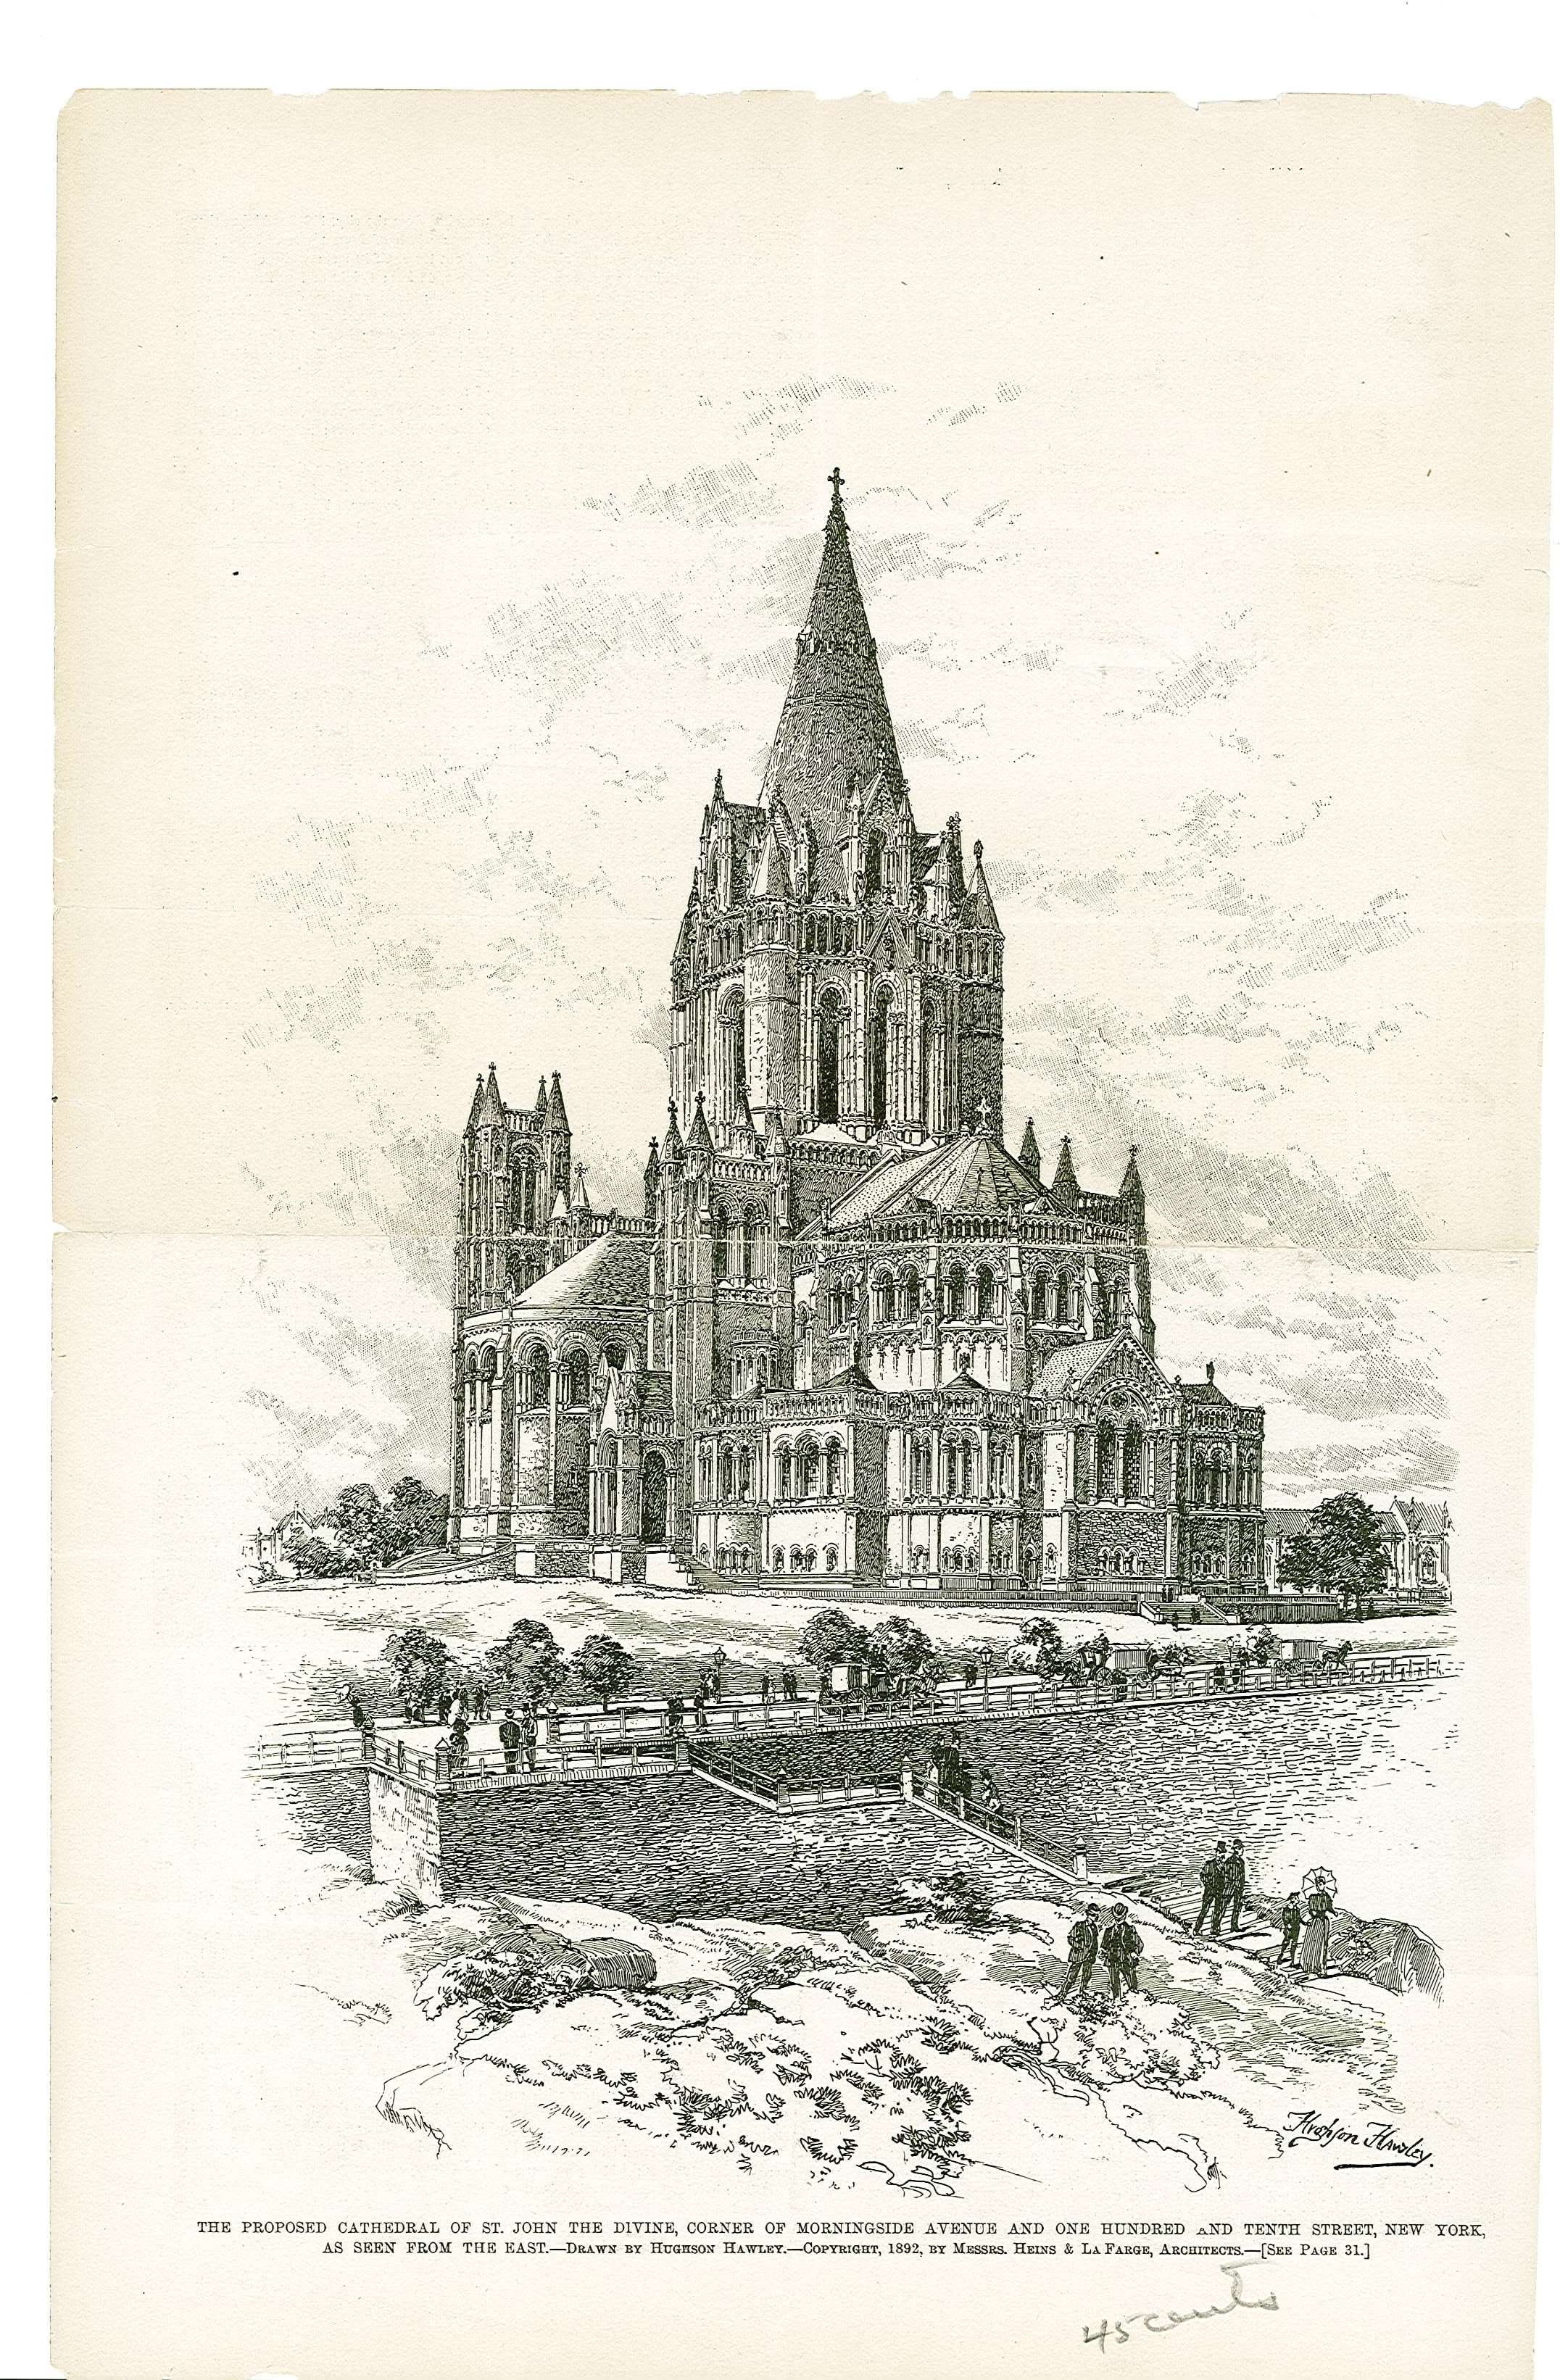 1892: Etching of St. John the Divine as designed by Heins & LaFarge from the edge of Morningside Park. Almost everything in the etching would not be built as drawn, including the south transept, back stairs and entrance where a barbed wire fence now faces onto Morningside Park. Credit: Episcopal Dioceses Archive of New York